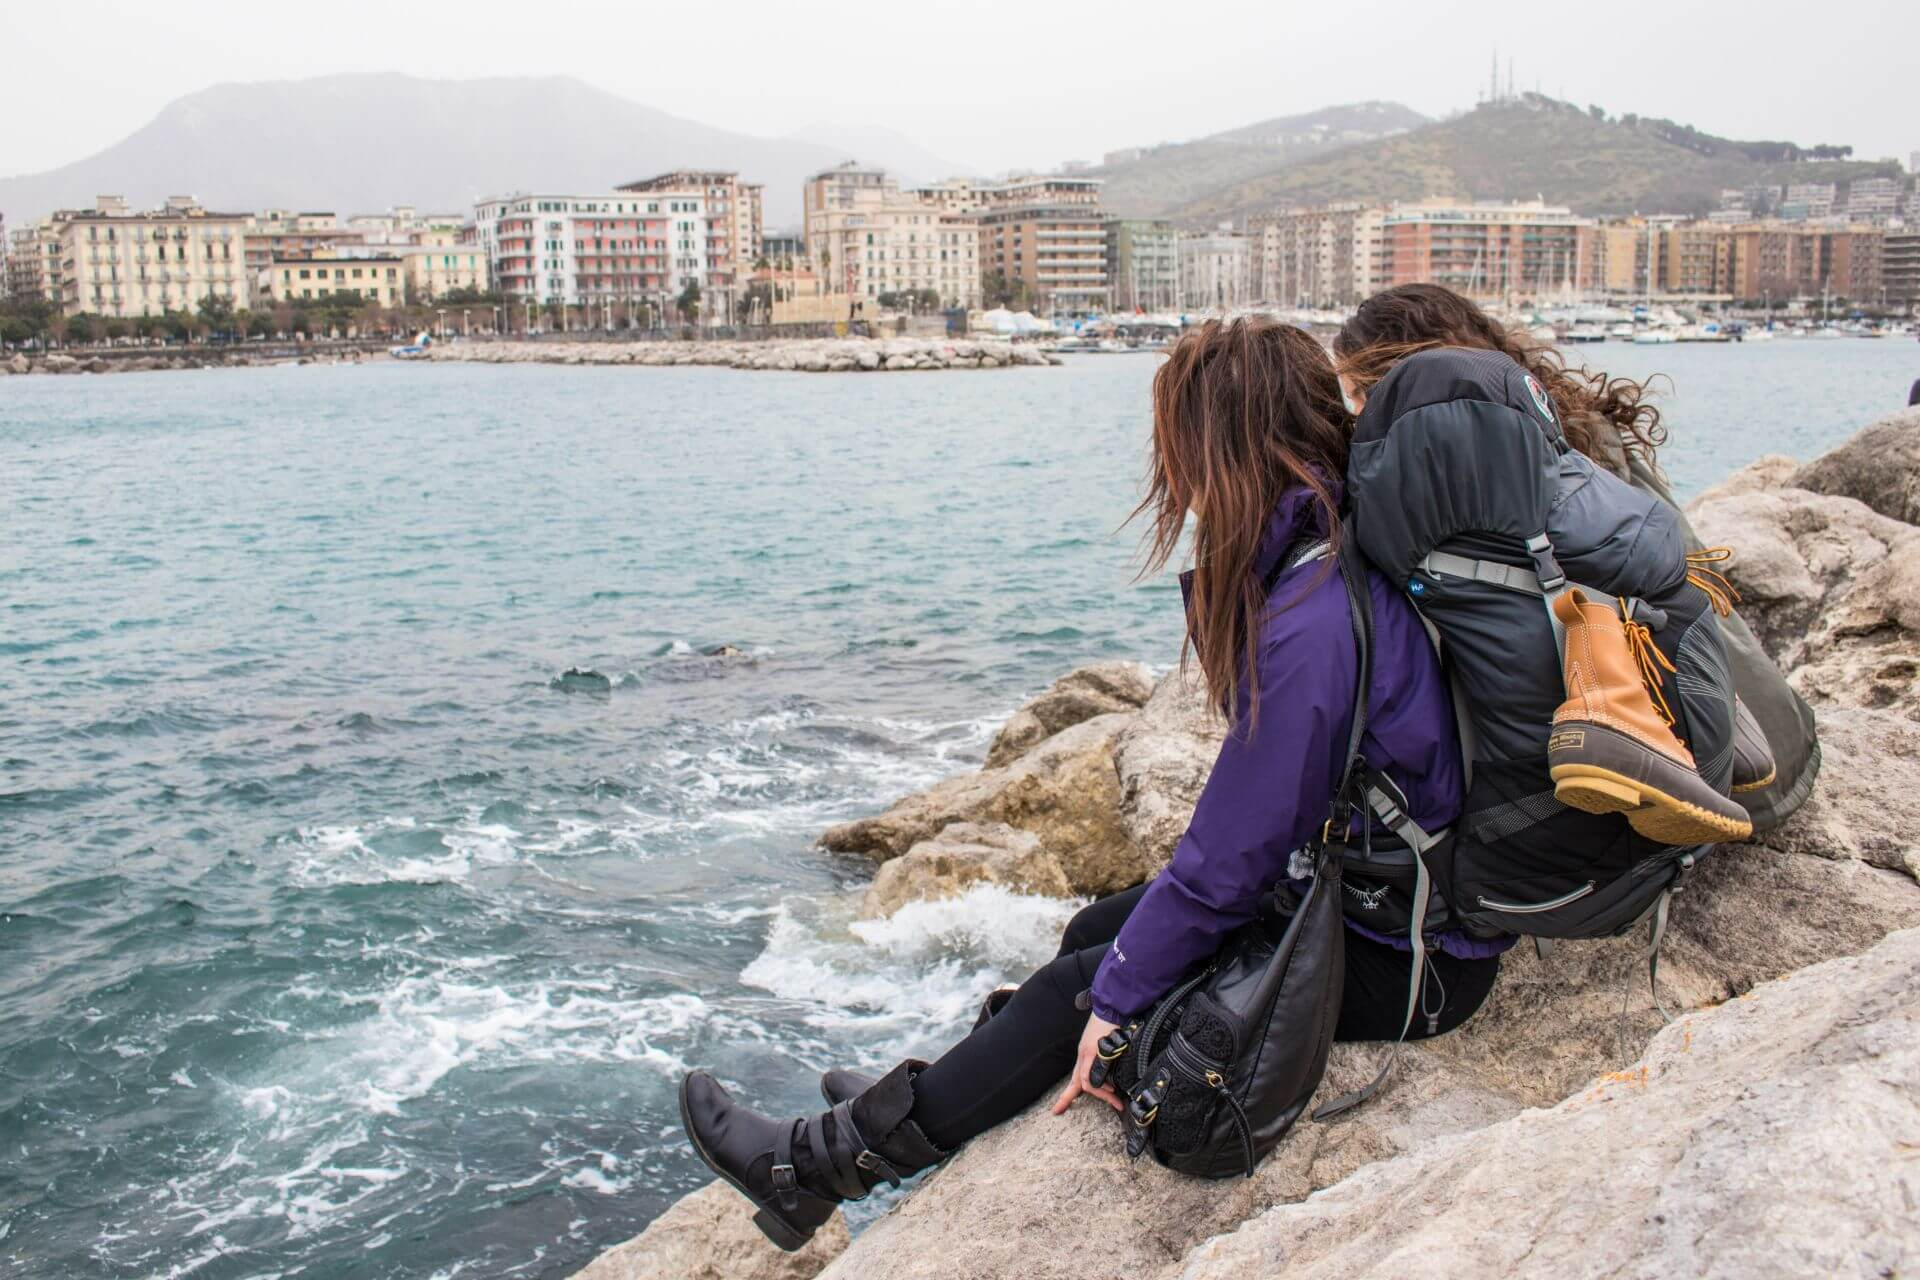 Women with backpacks look out over the sea.